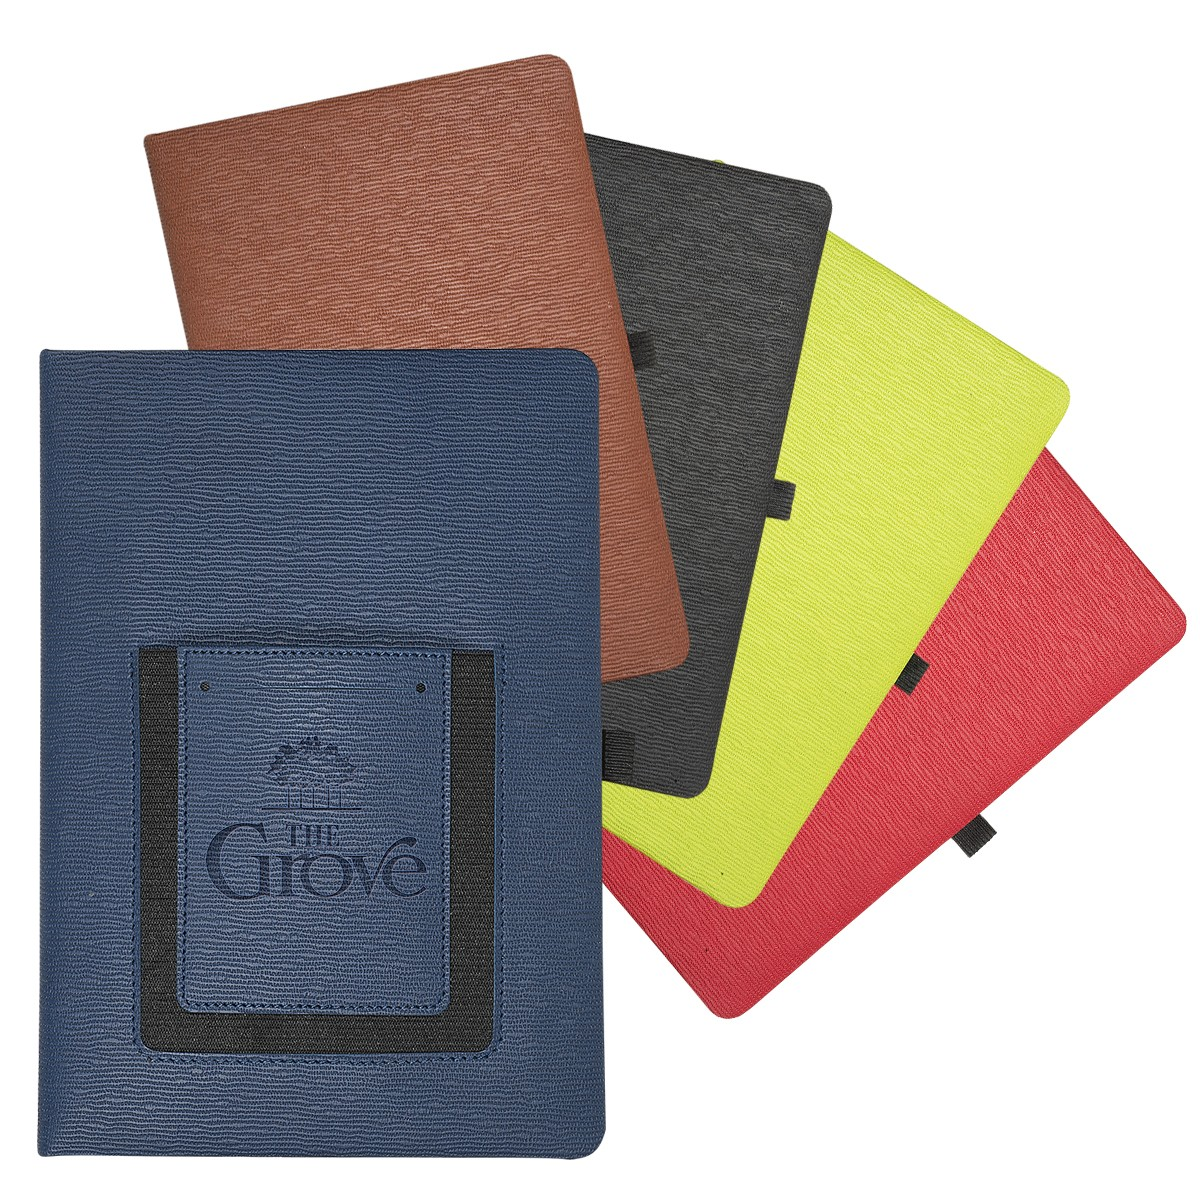 notebook with phone pocket, fresh ideas for fall